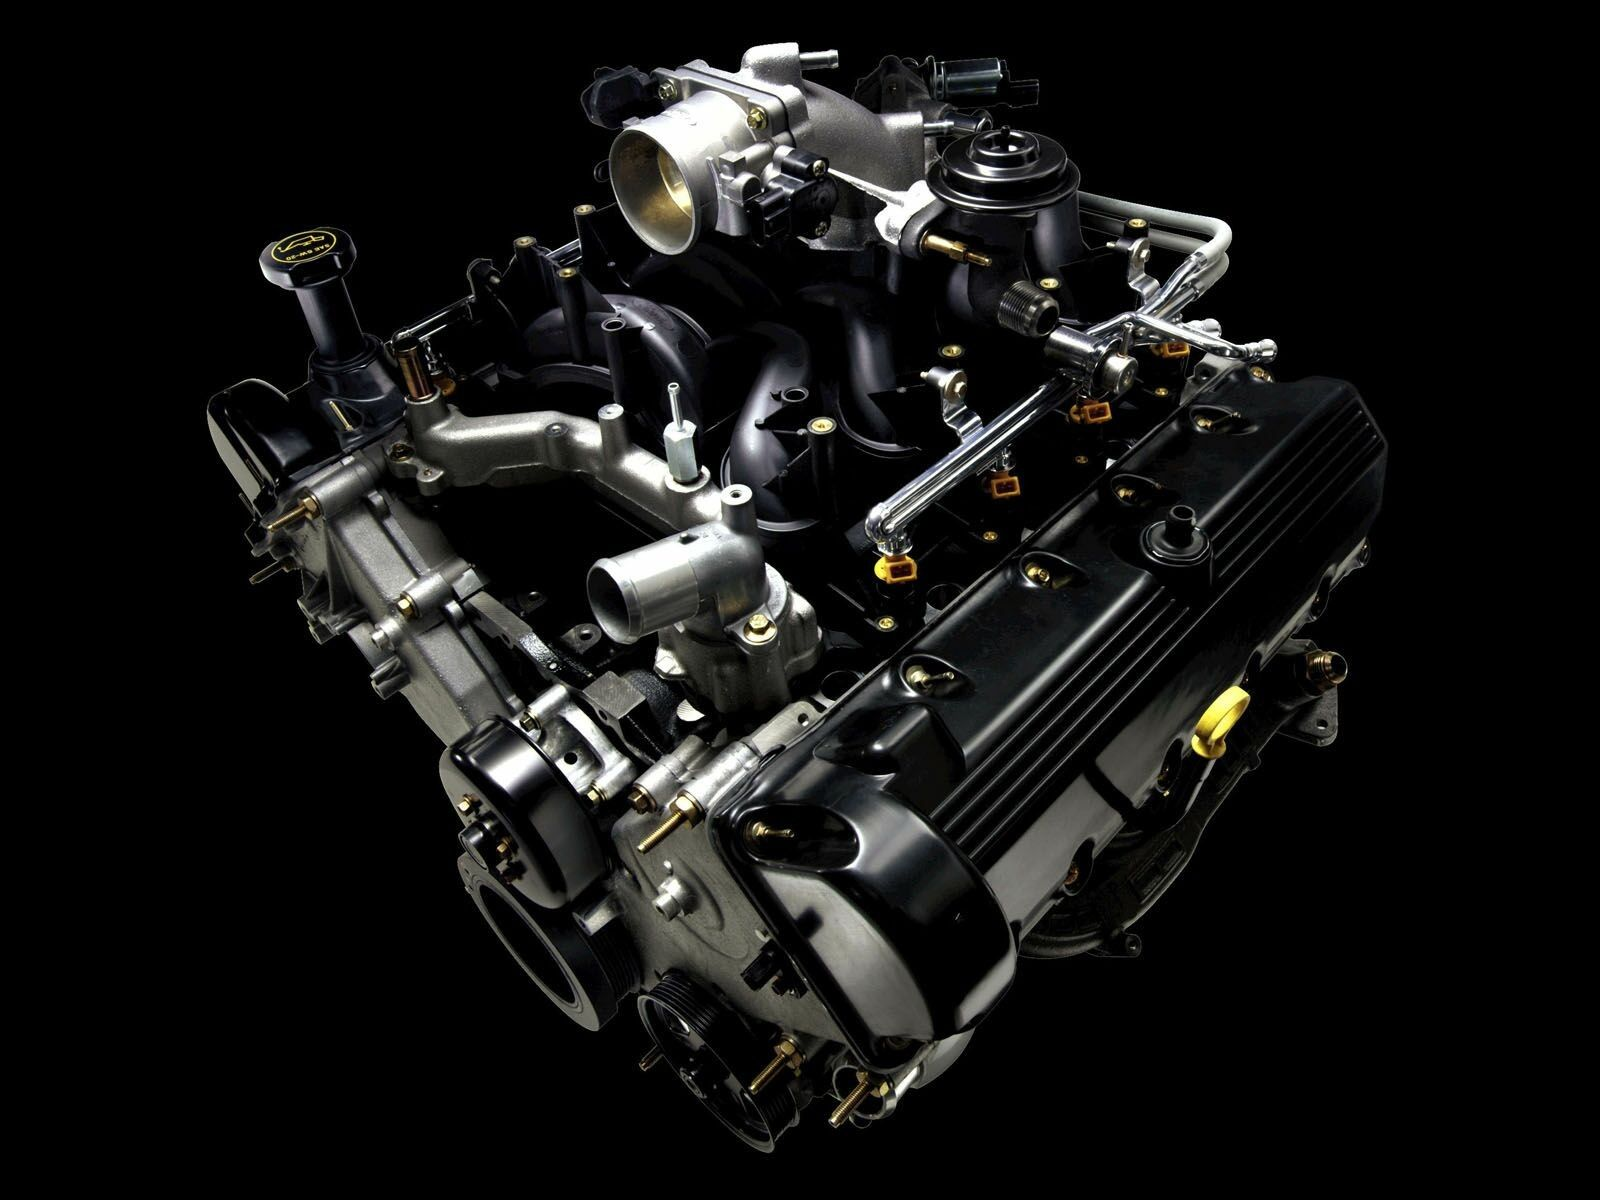 Car Engine Wallpapers Top Free Car Engine Backgrounds Wallpaperaccess